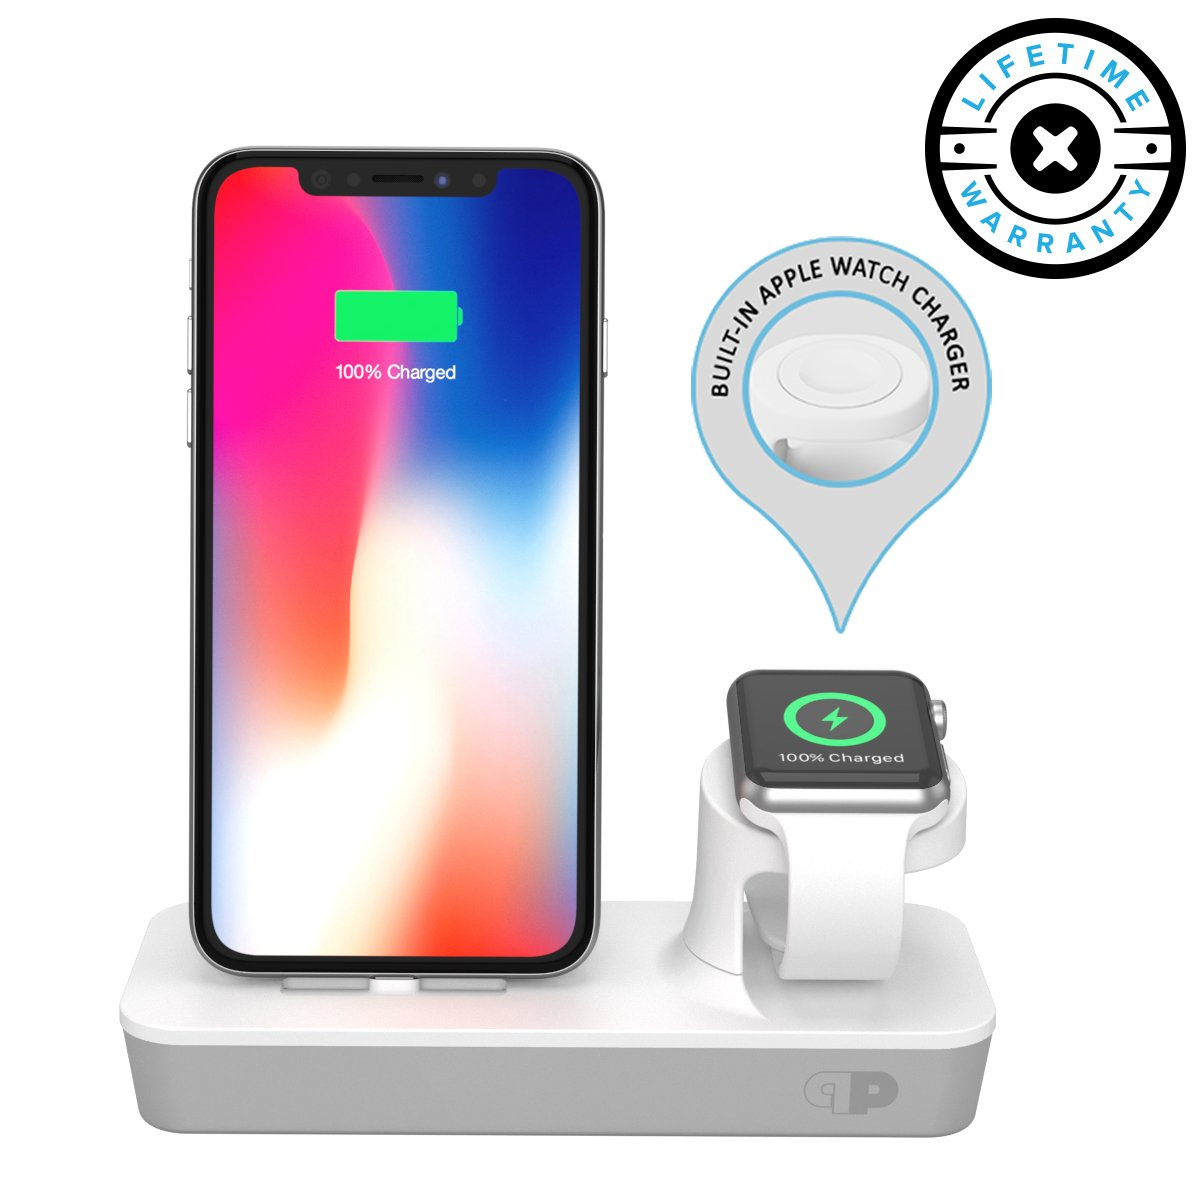 ONE Dock Duo (APPLE CERTIFIED) Power Station Dock, Stand & Charger with Built-in ORIGINAL Charger for Apple Watch Smart Watch (Series 1,2,3, Nike+), iPhone X/10/8/8 Plus/7/7Plus/6s/6s, & iPod - White